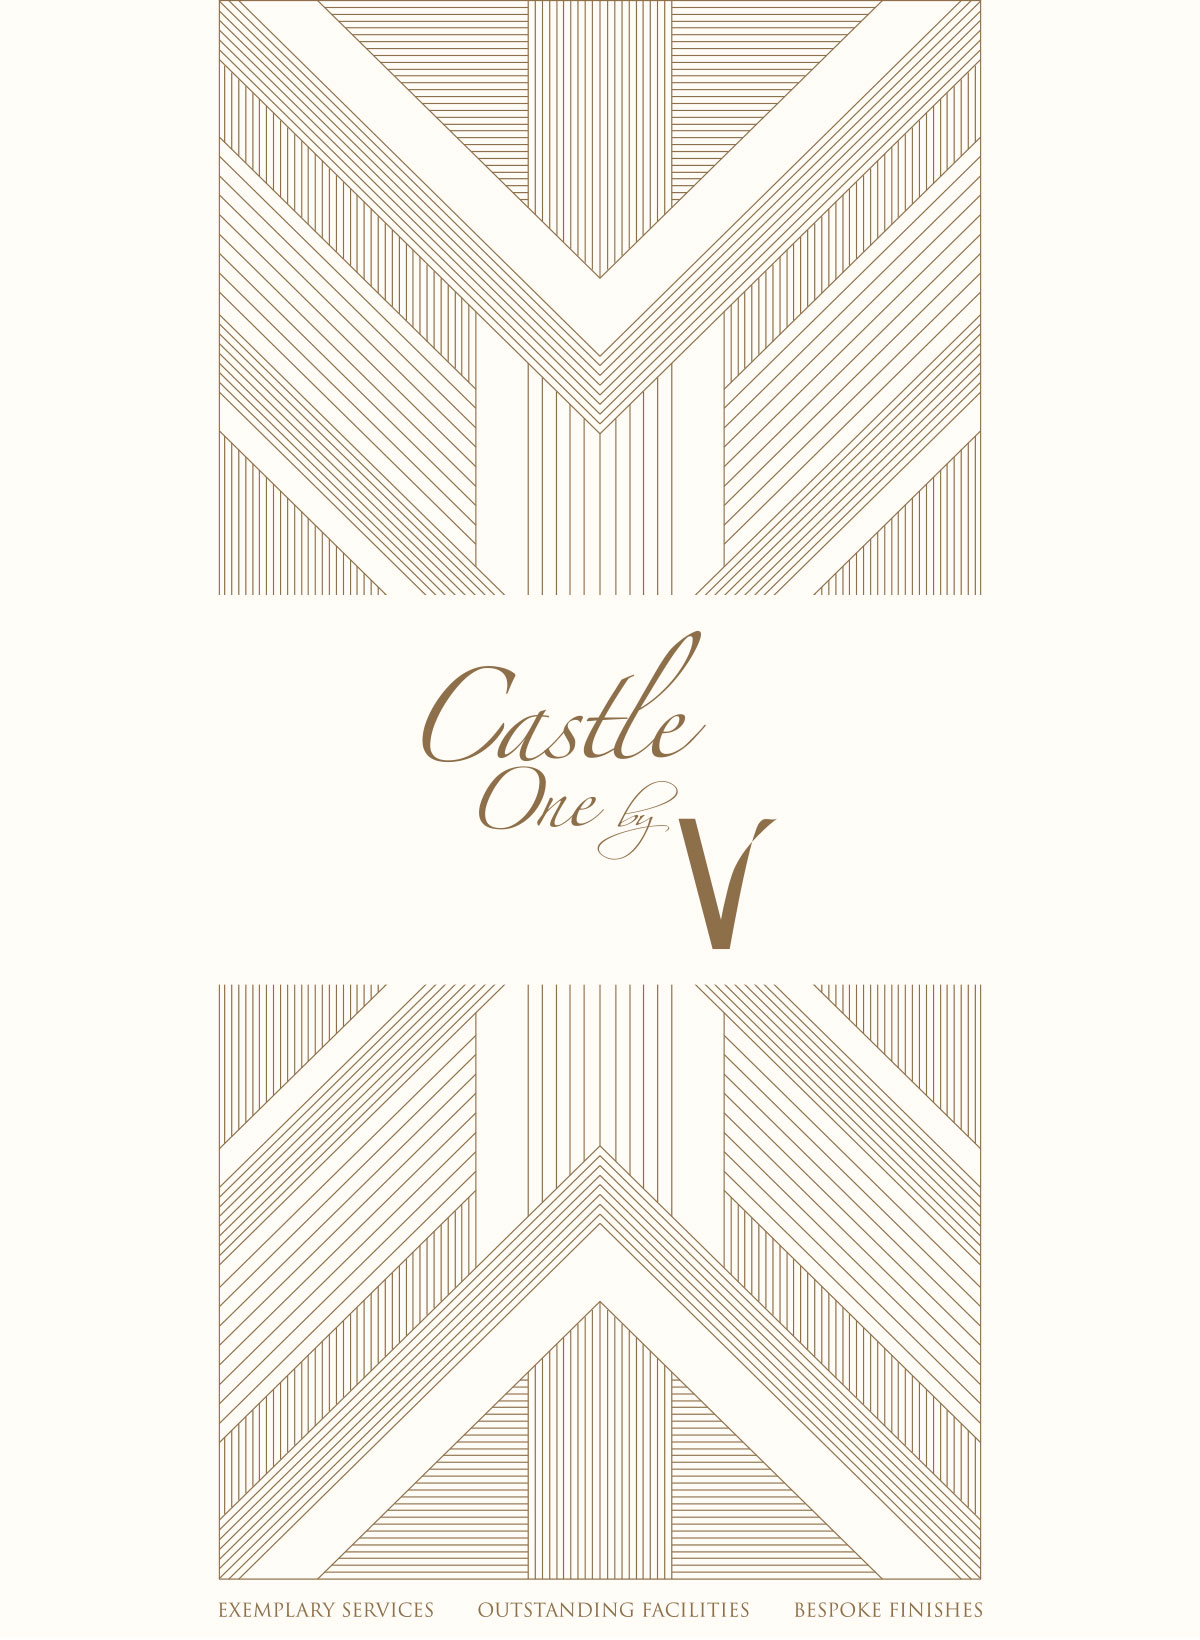 Castle One by V - e-brochure